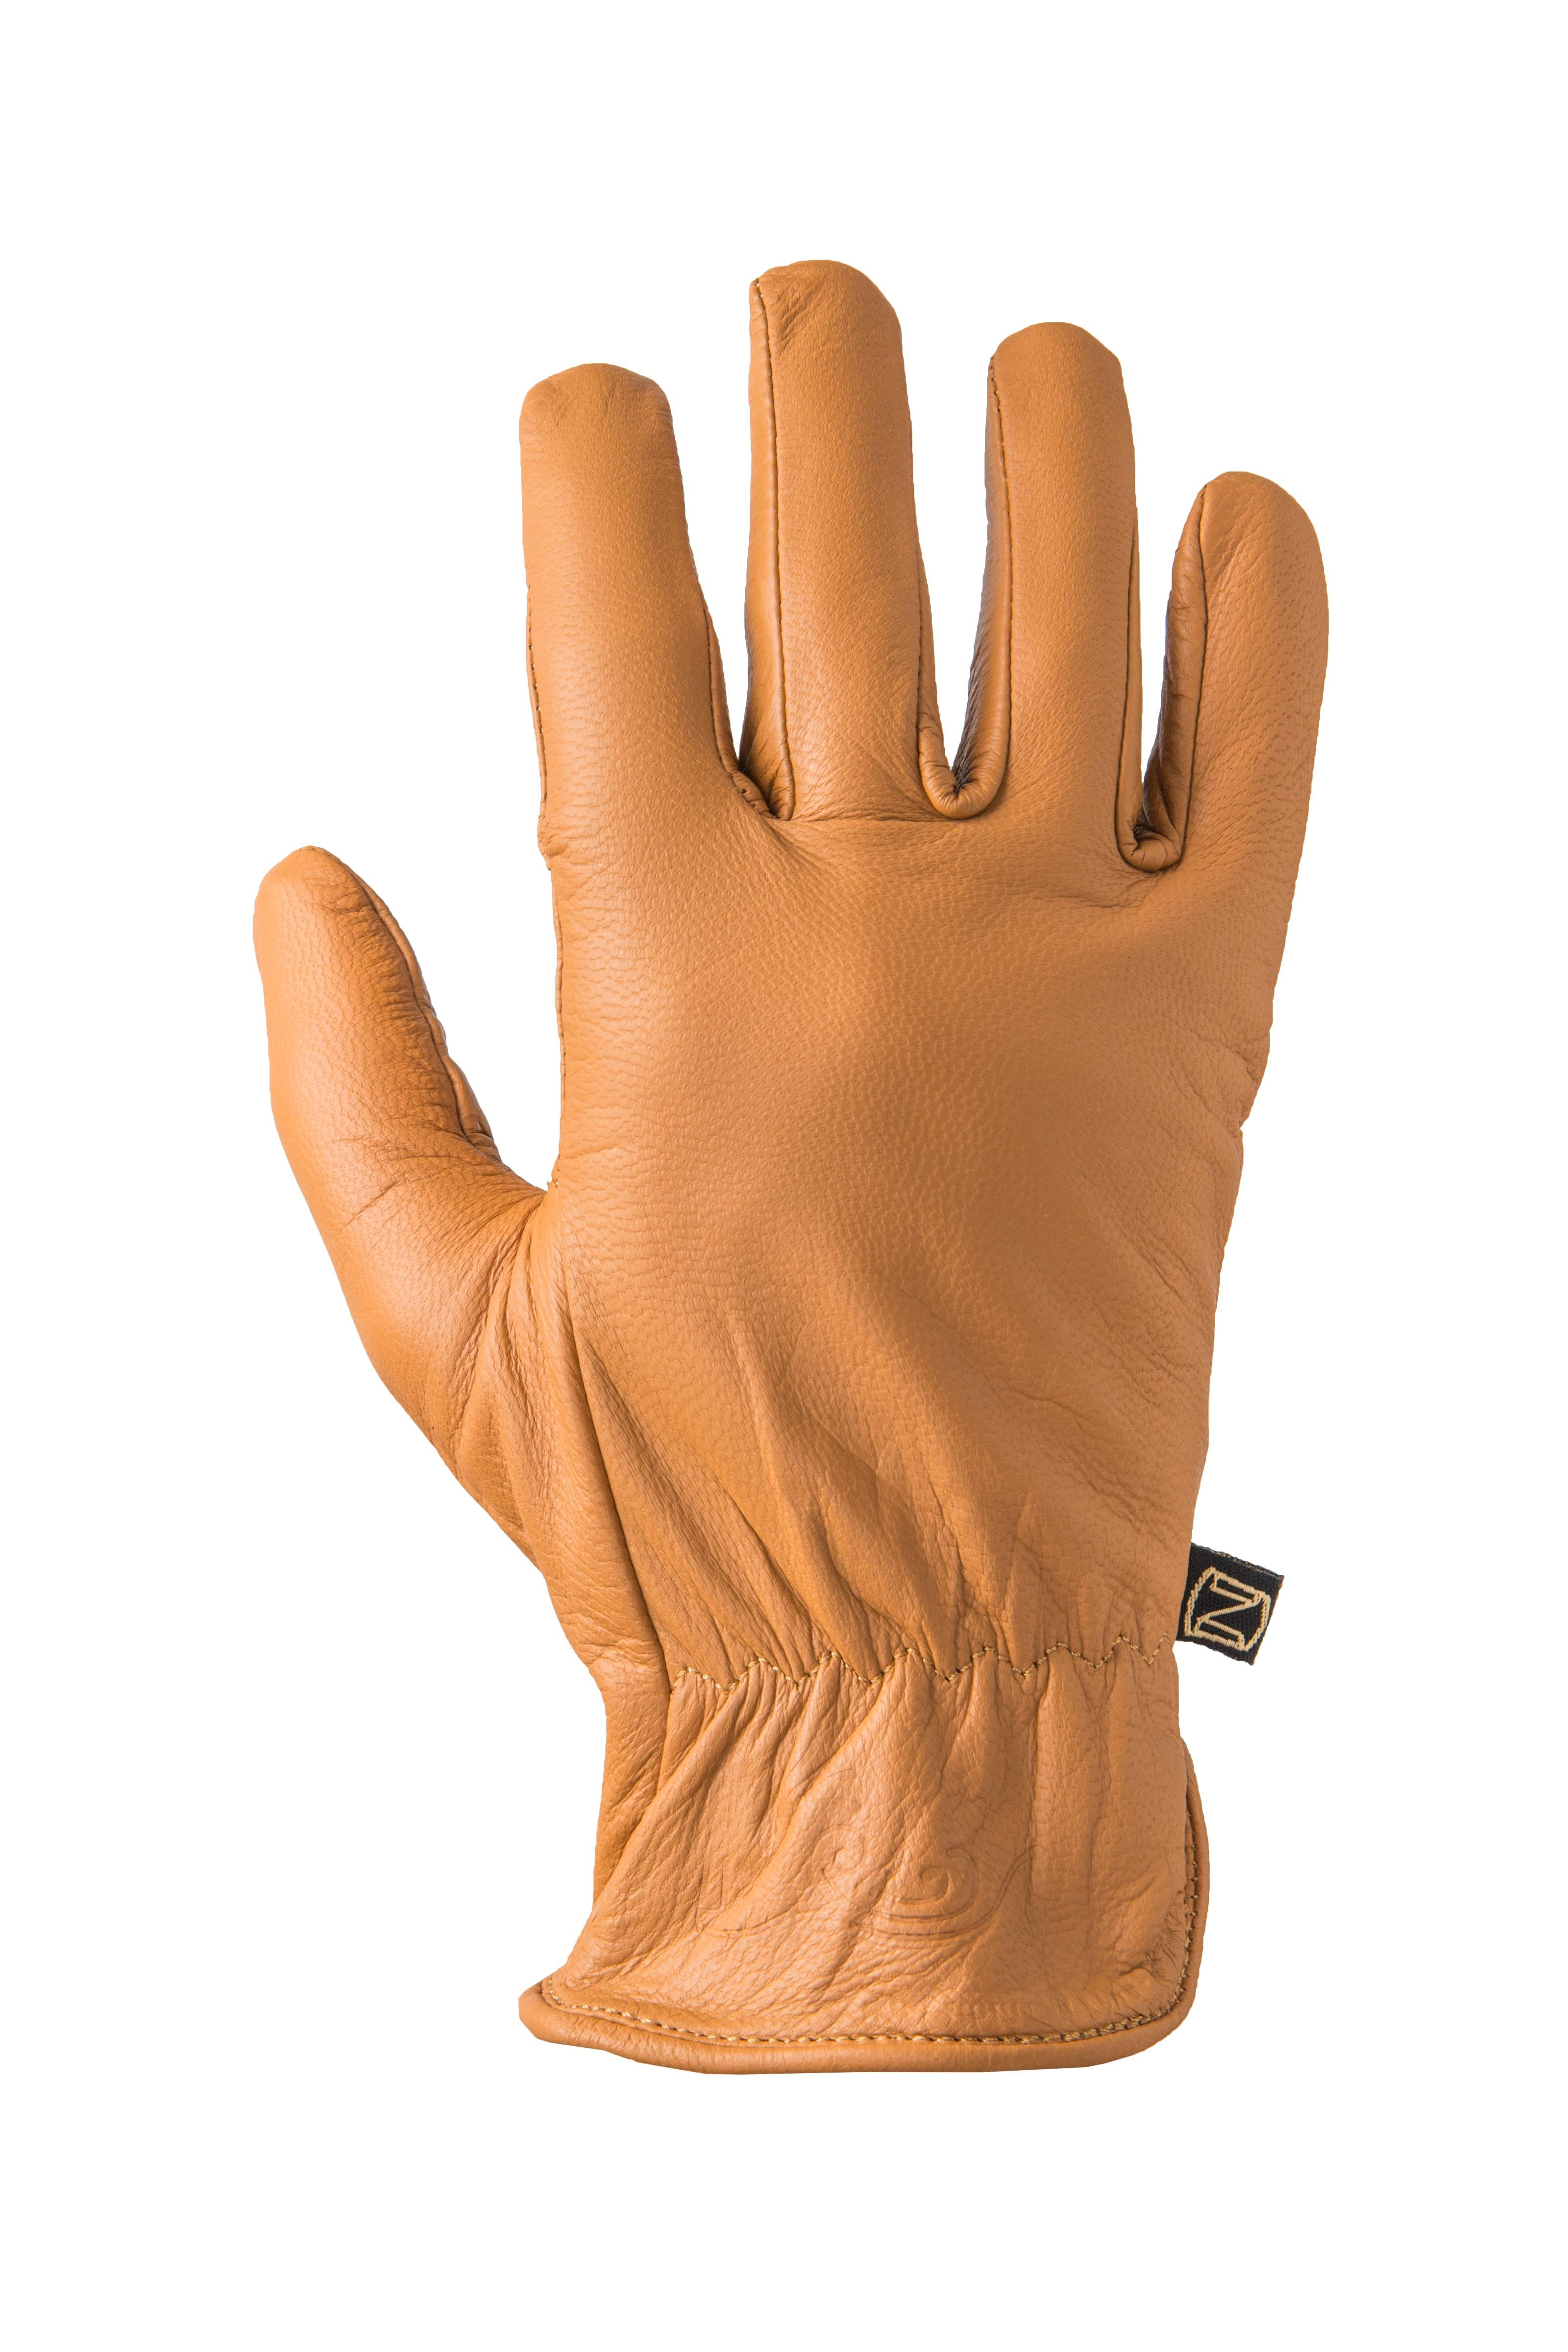 Noble Outfitters Cheyenne Sheepskin Glove - Ladies